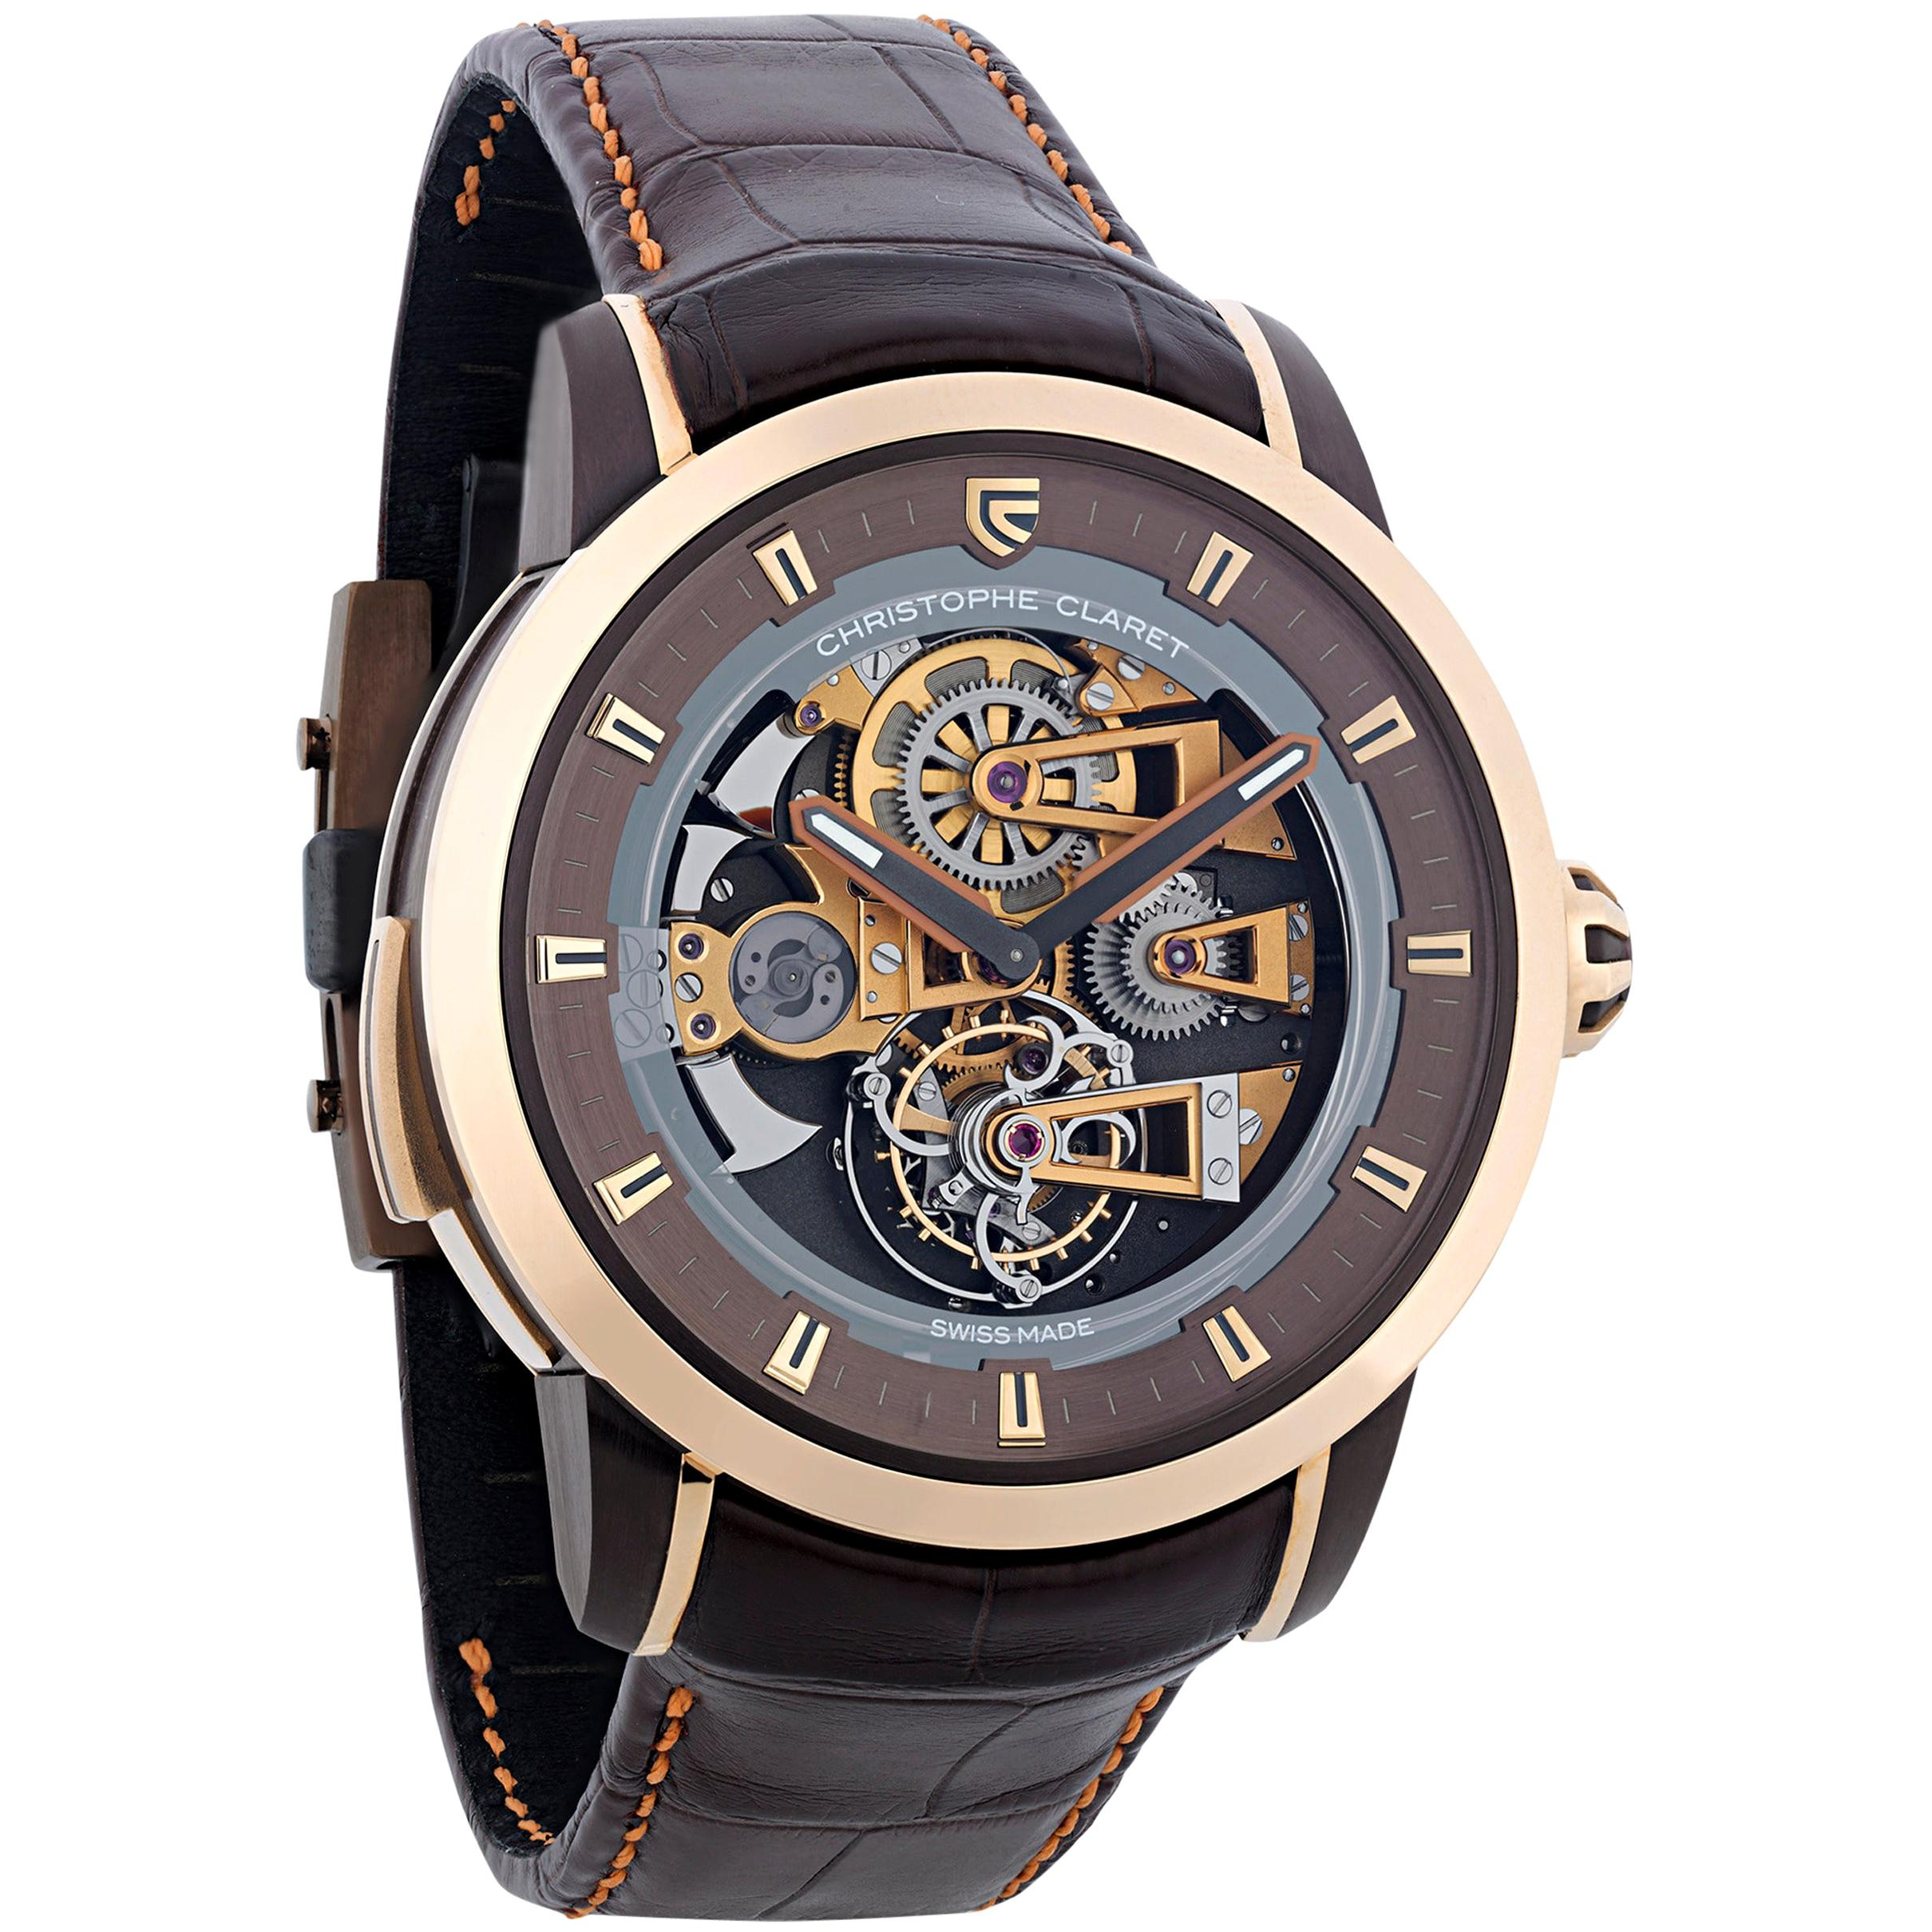 Soprano Limited Edition Watch by Christophe Claret